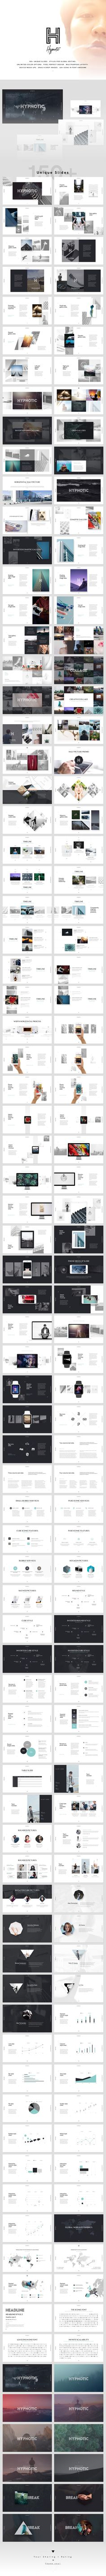 HYPNOTIC is progressive presentation builder with more than 150+ premade unique slide layouts. Timeless design and wide range of use make it a great tool for creating unique slides.